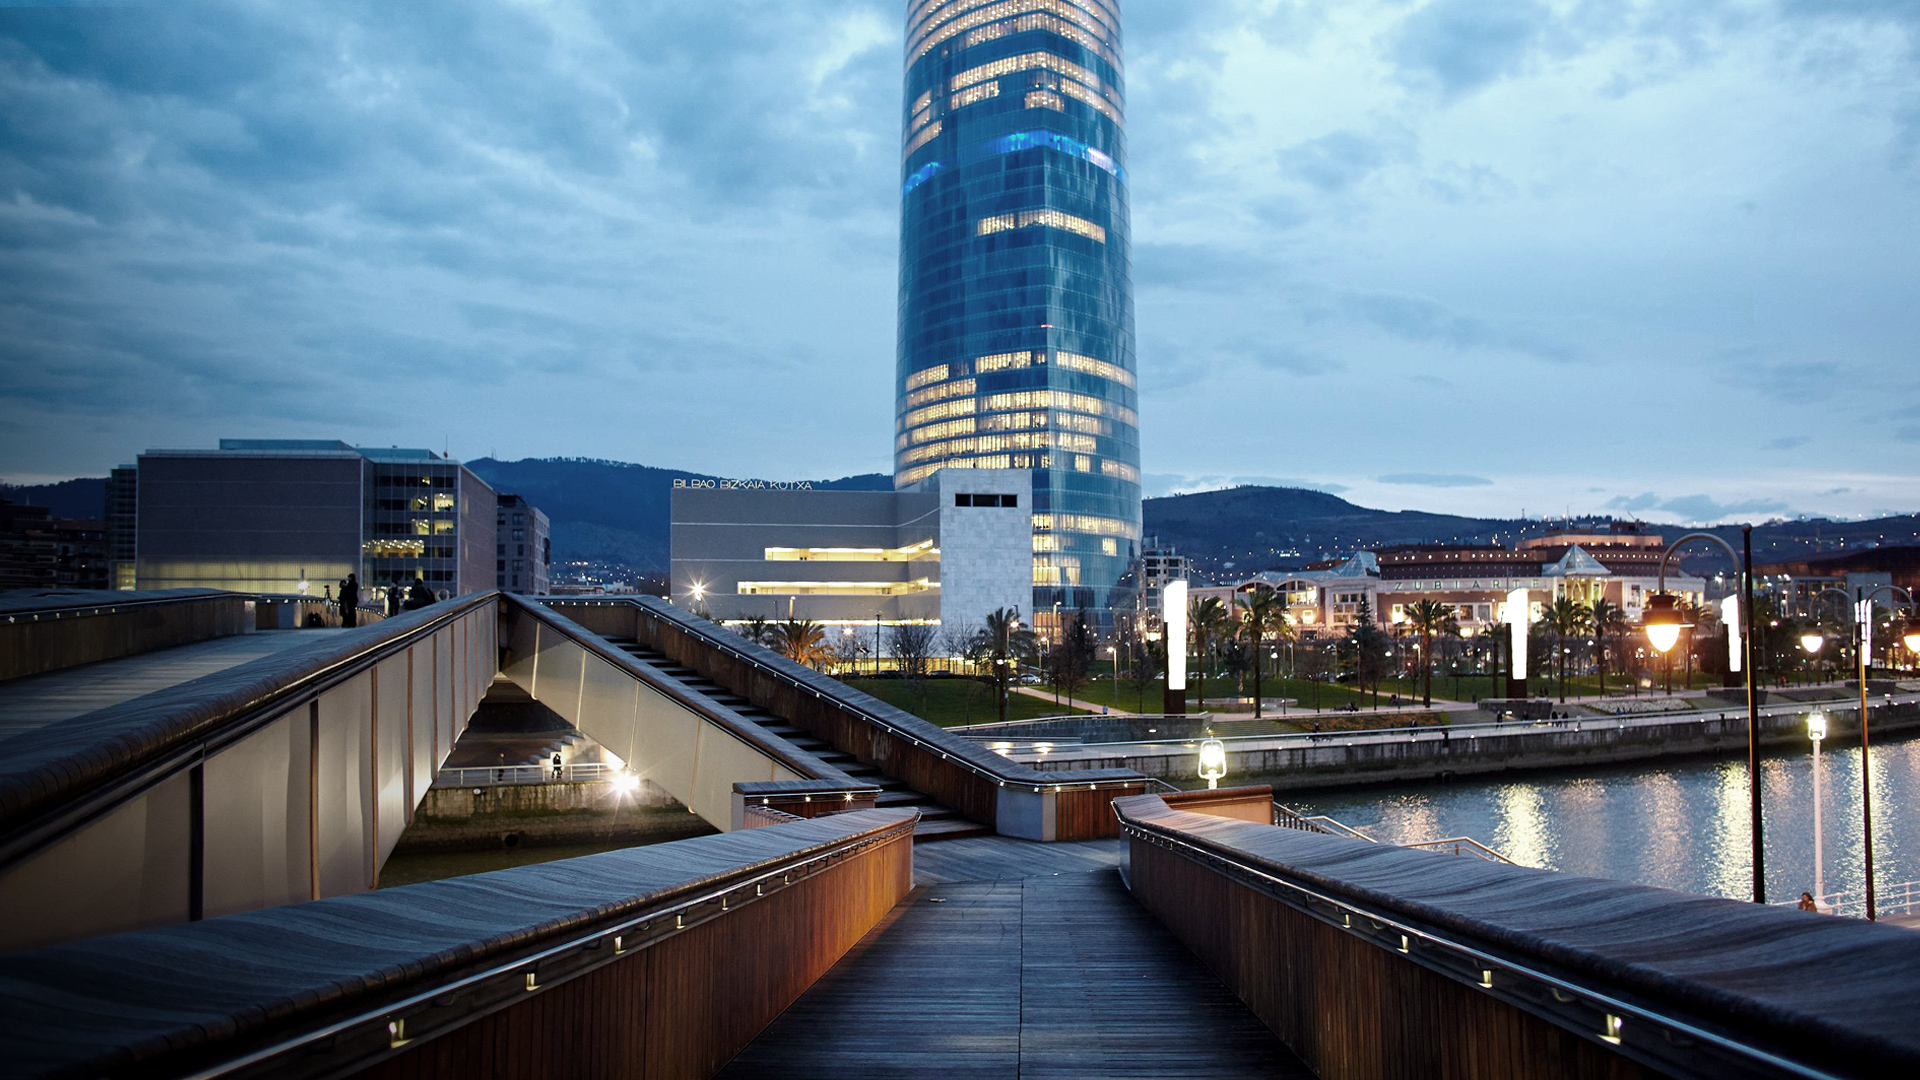 iberdrola tower 2 locations in bilbao bizkaia. Black Bedroom Furniture Sets. Home Design Ideas